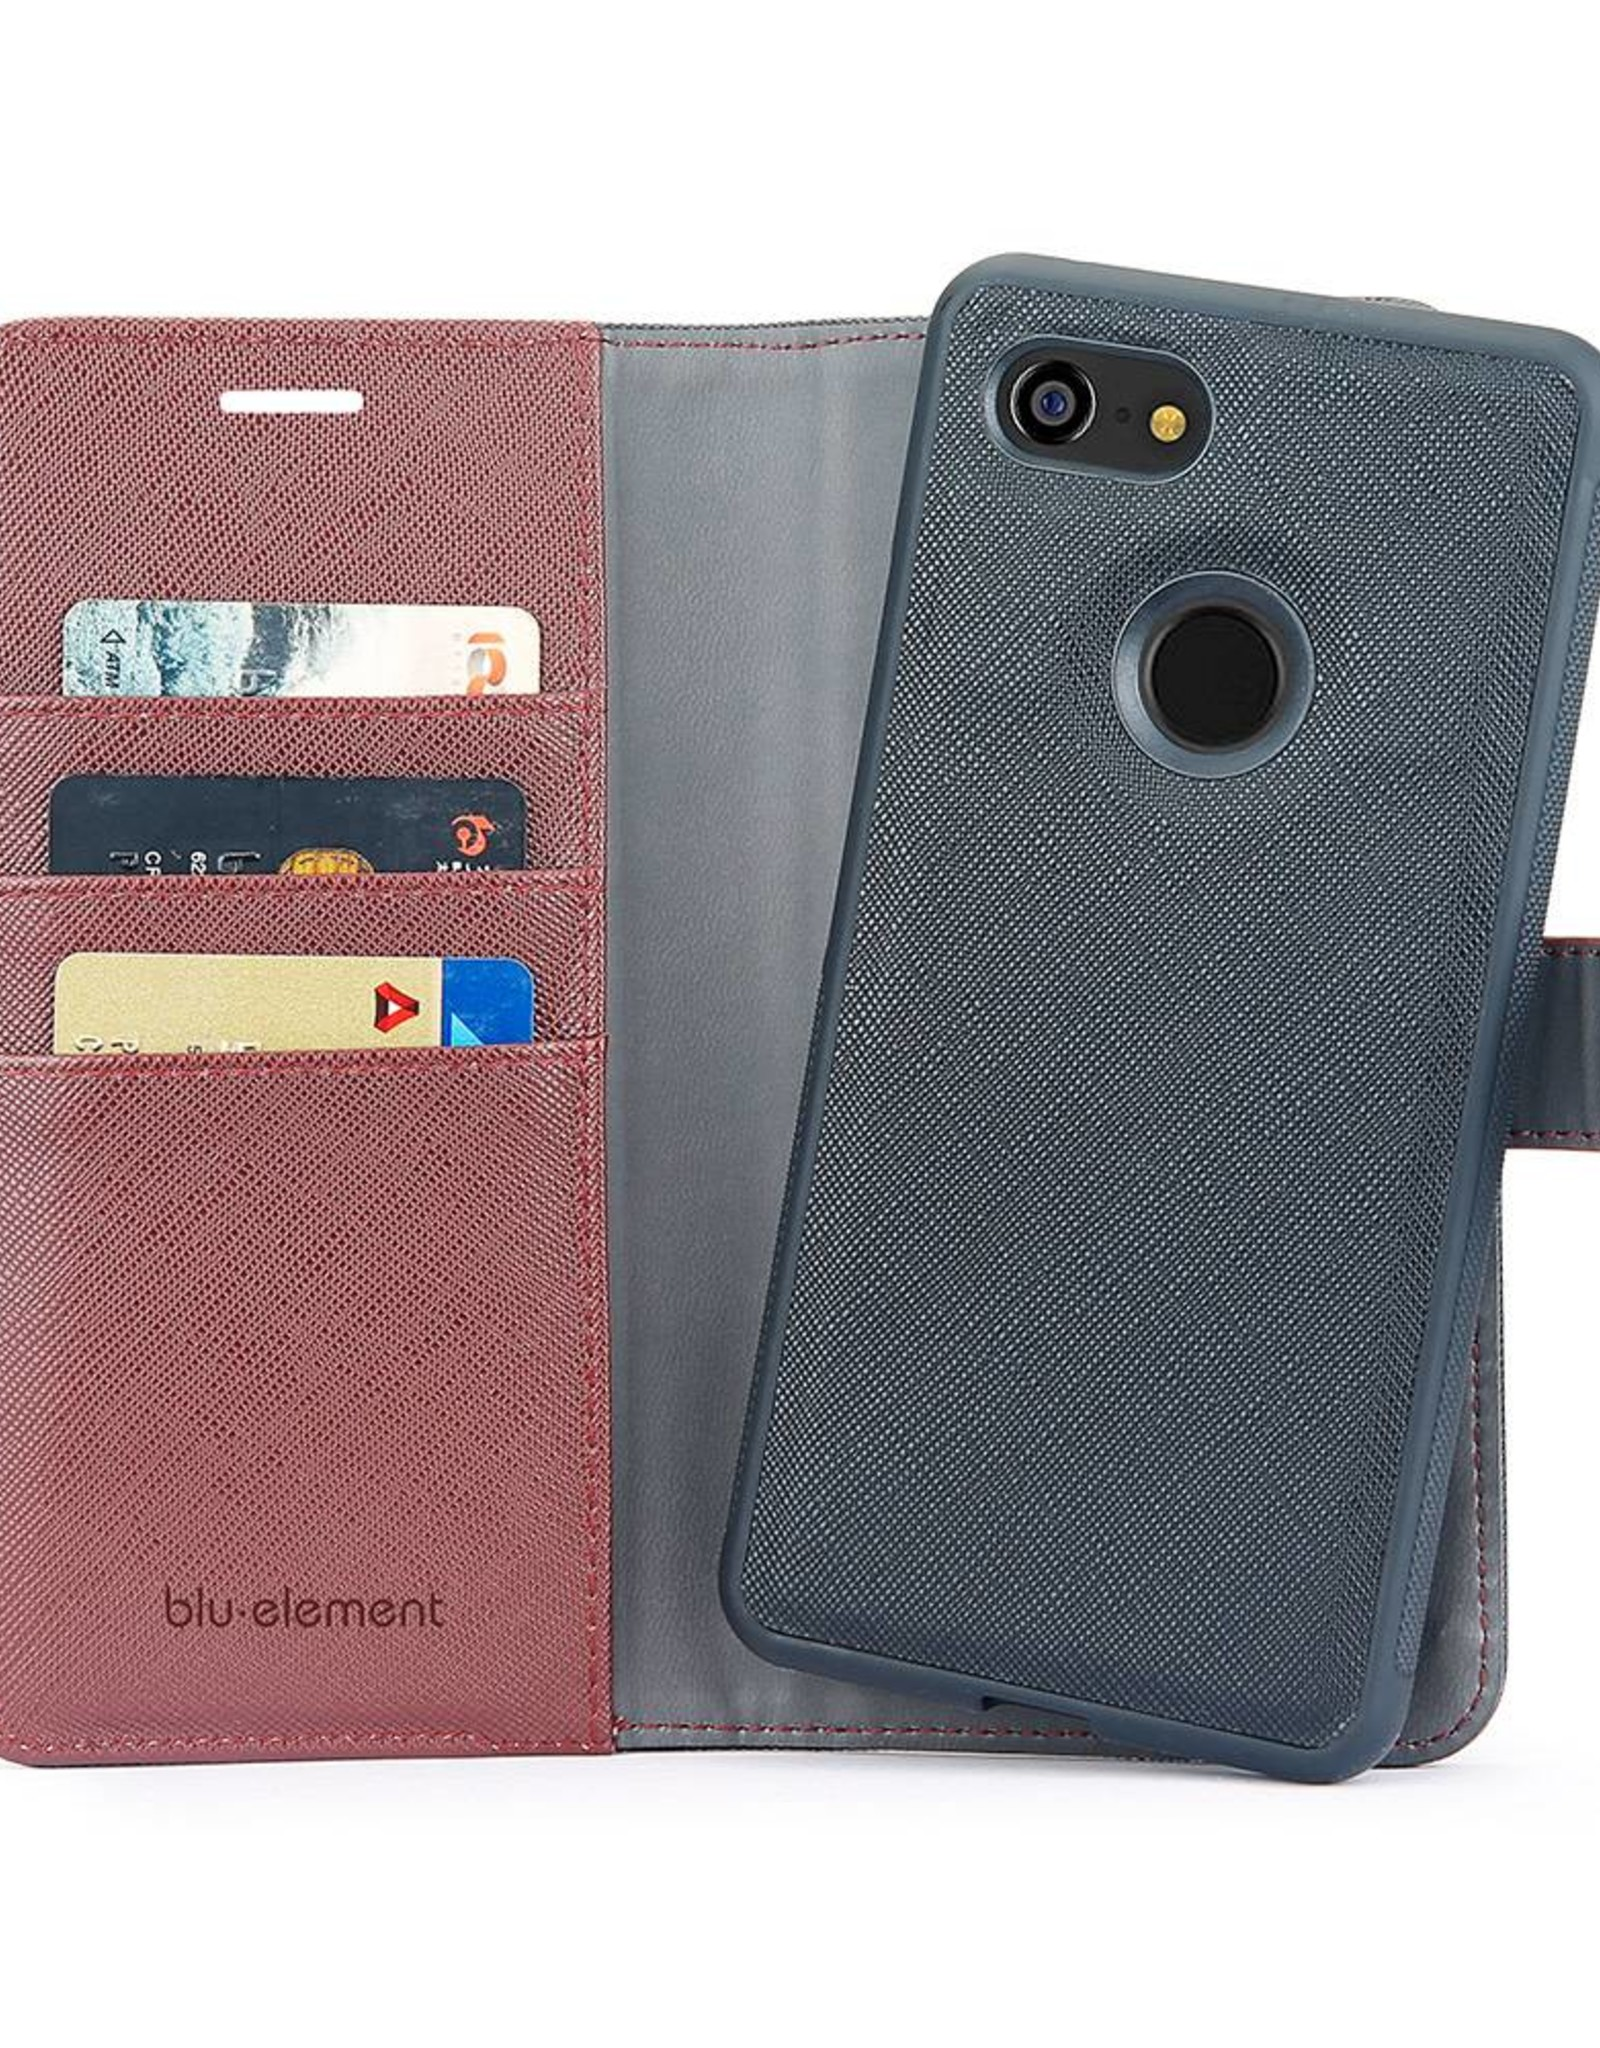 Blu Element Blu Element | Google Pixel 3 2 in 1 Folio Case Black/Brown | 120-1155